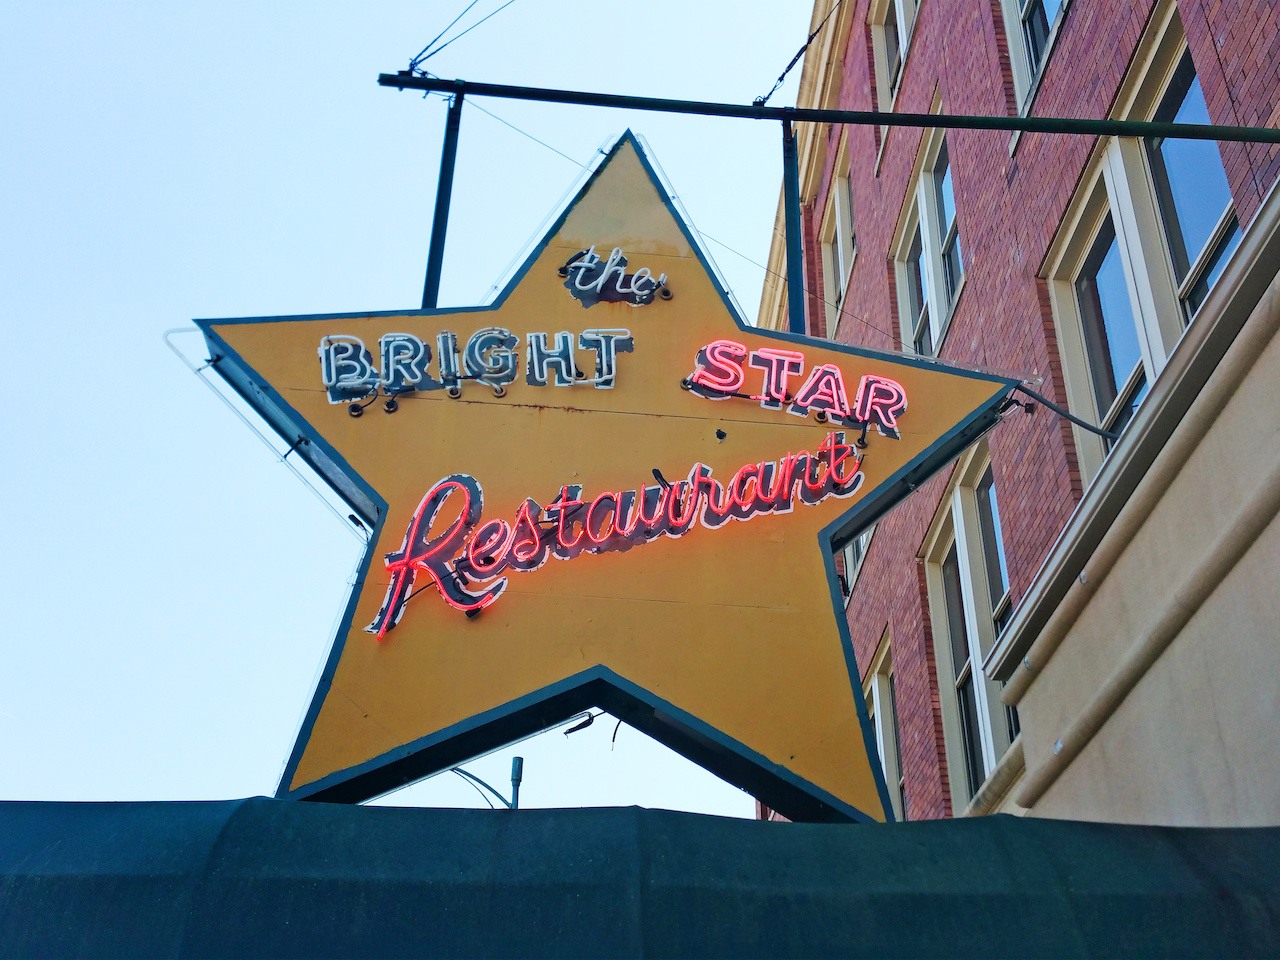 The neon sign that hangs above the awning exudes the charm of a bygone era.